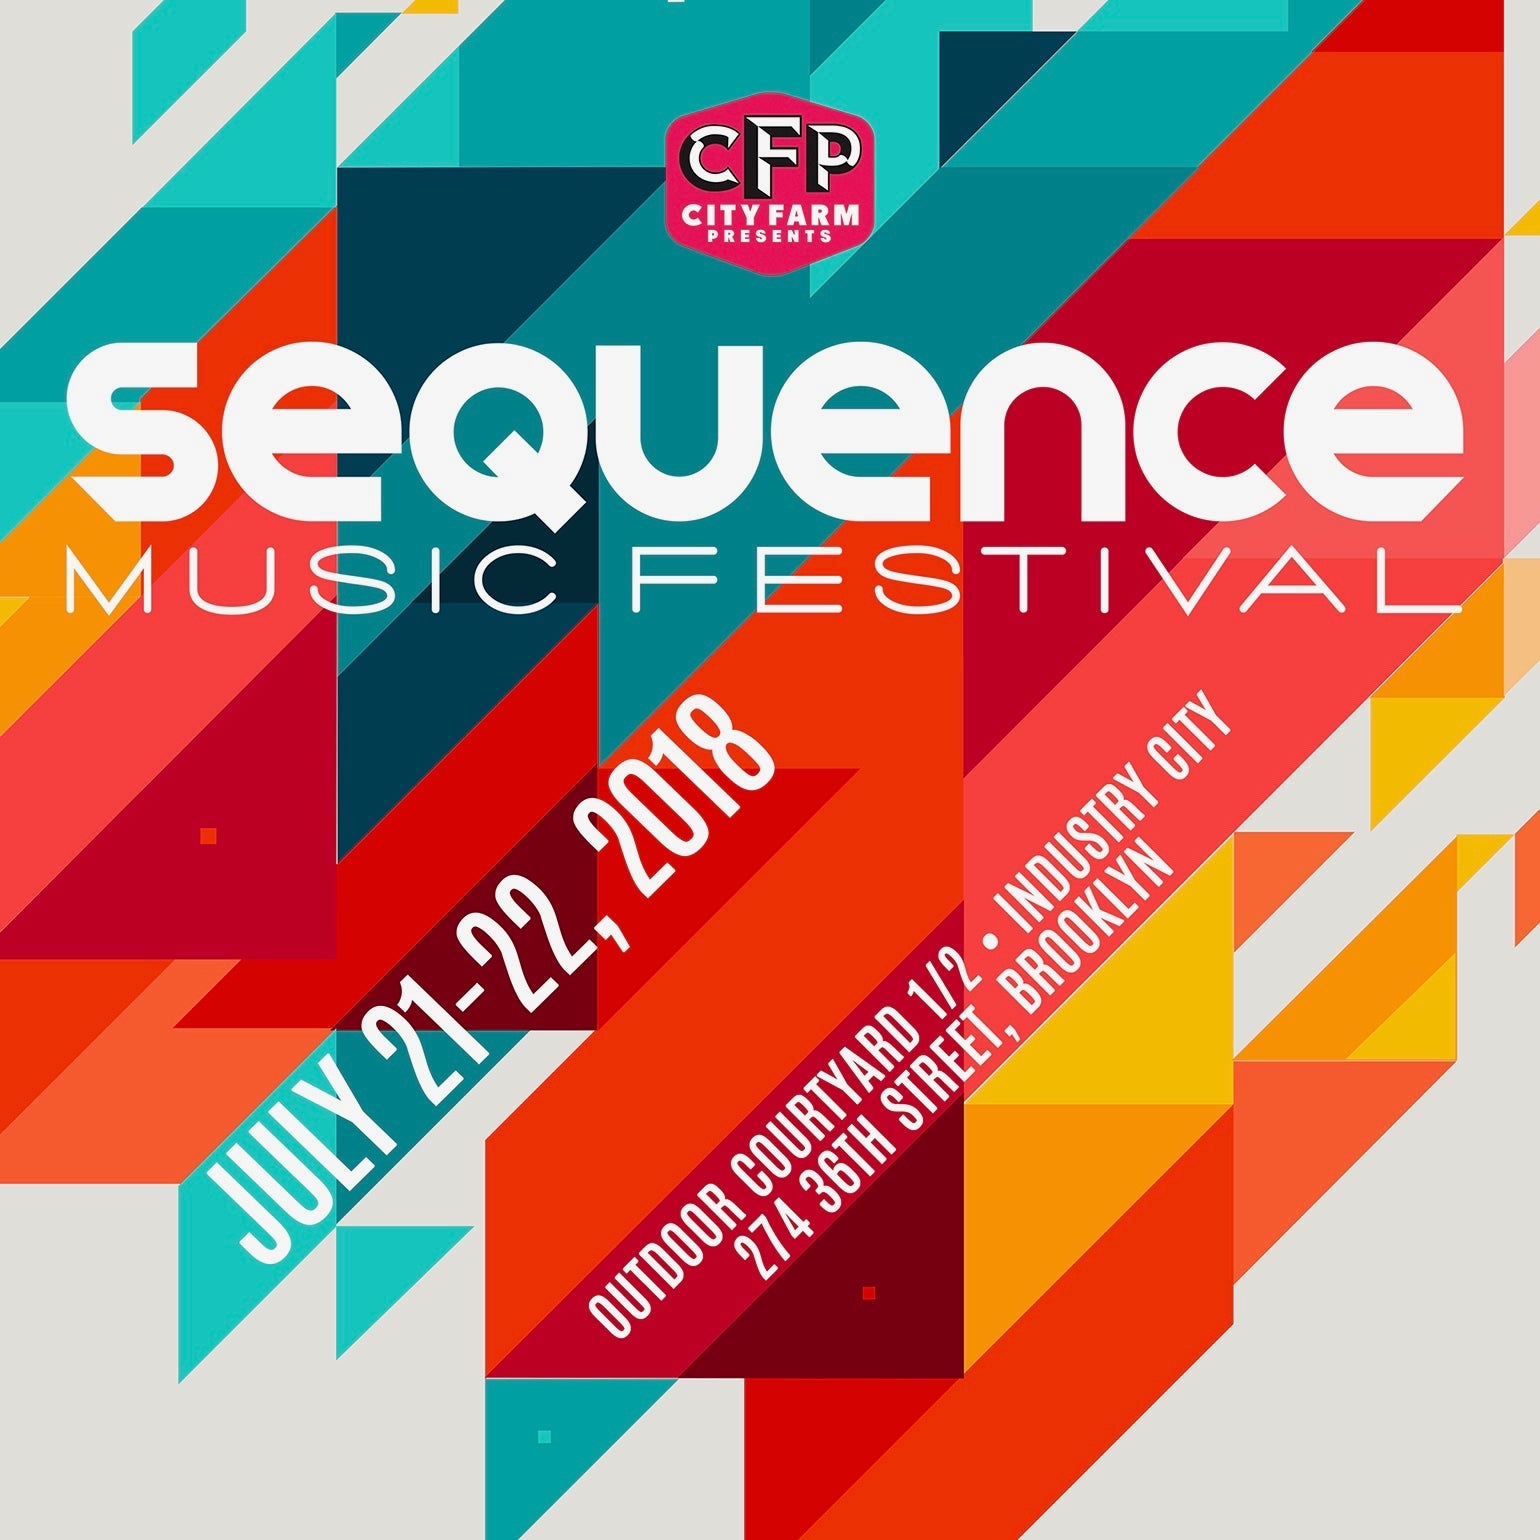 Why You Need To Attend Sequence Music Festival